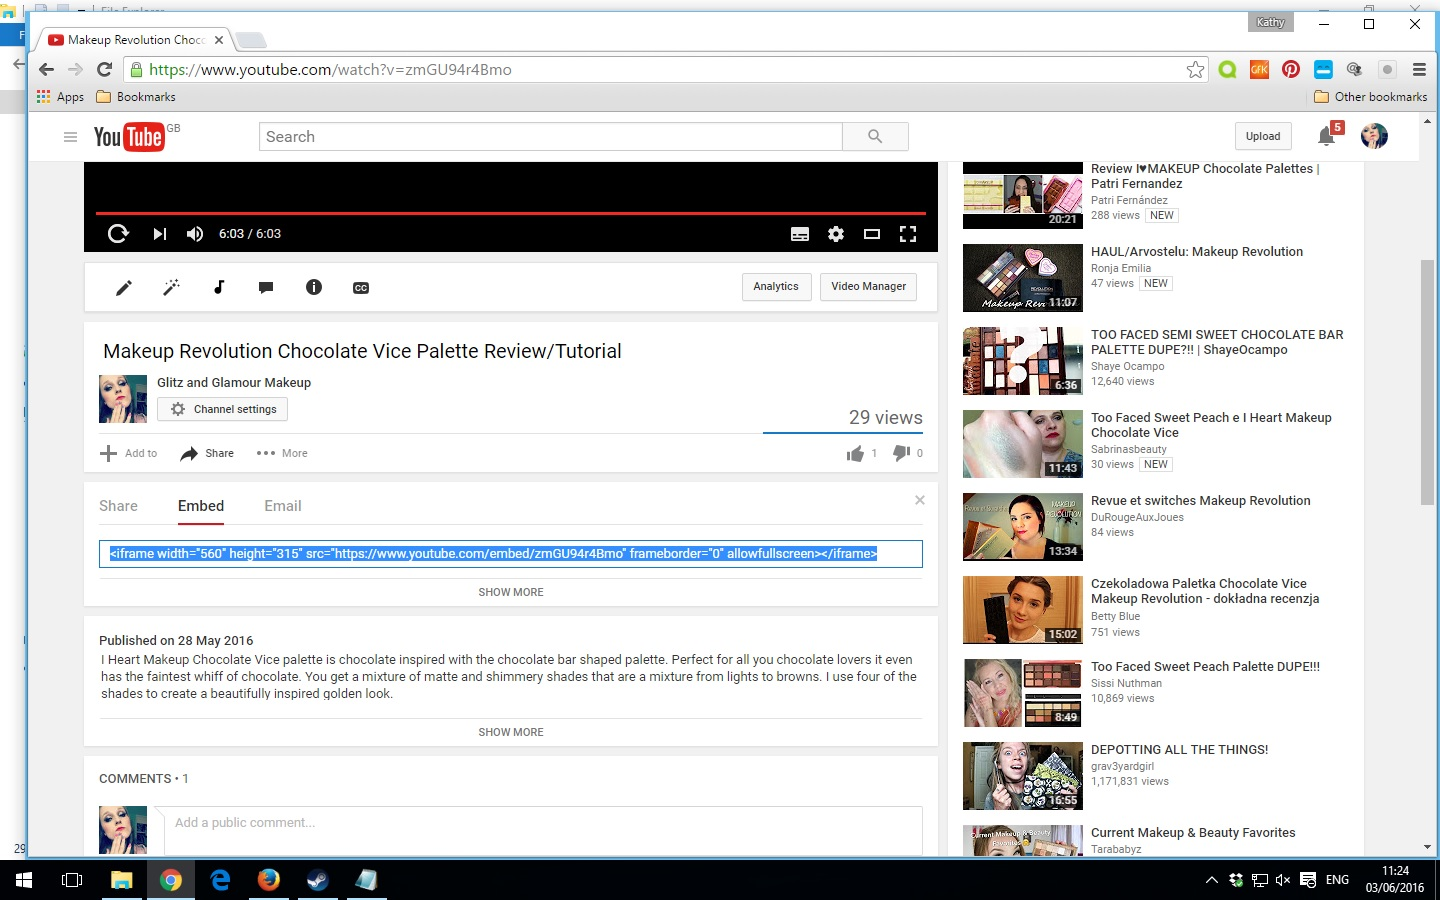 how to embed youtube videos into your blog post